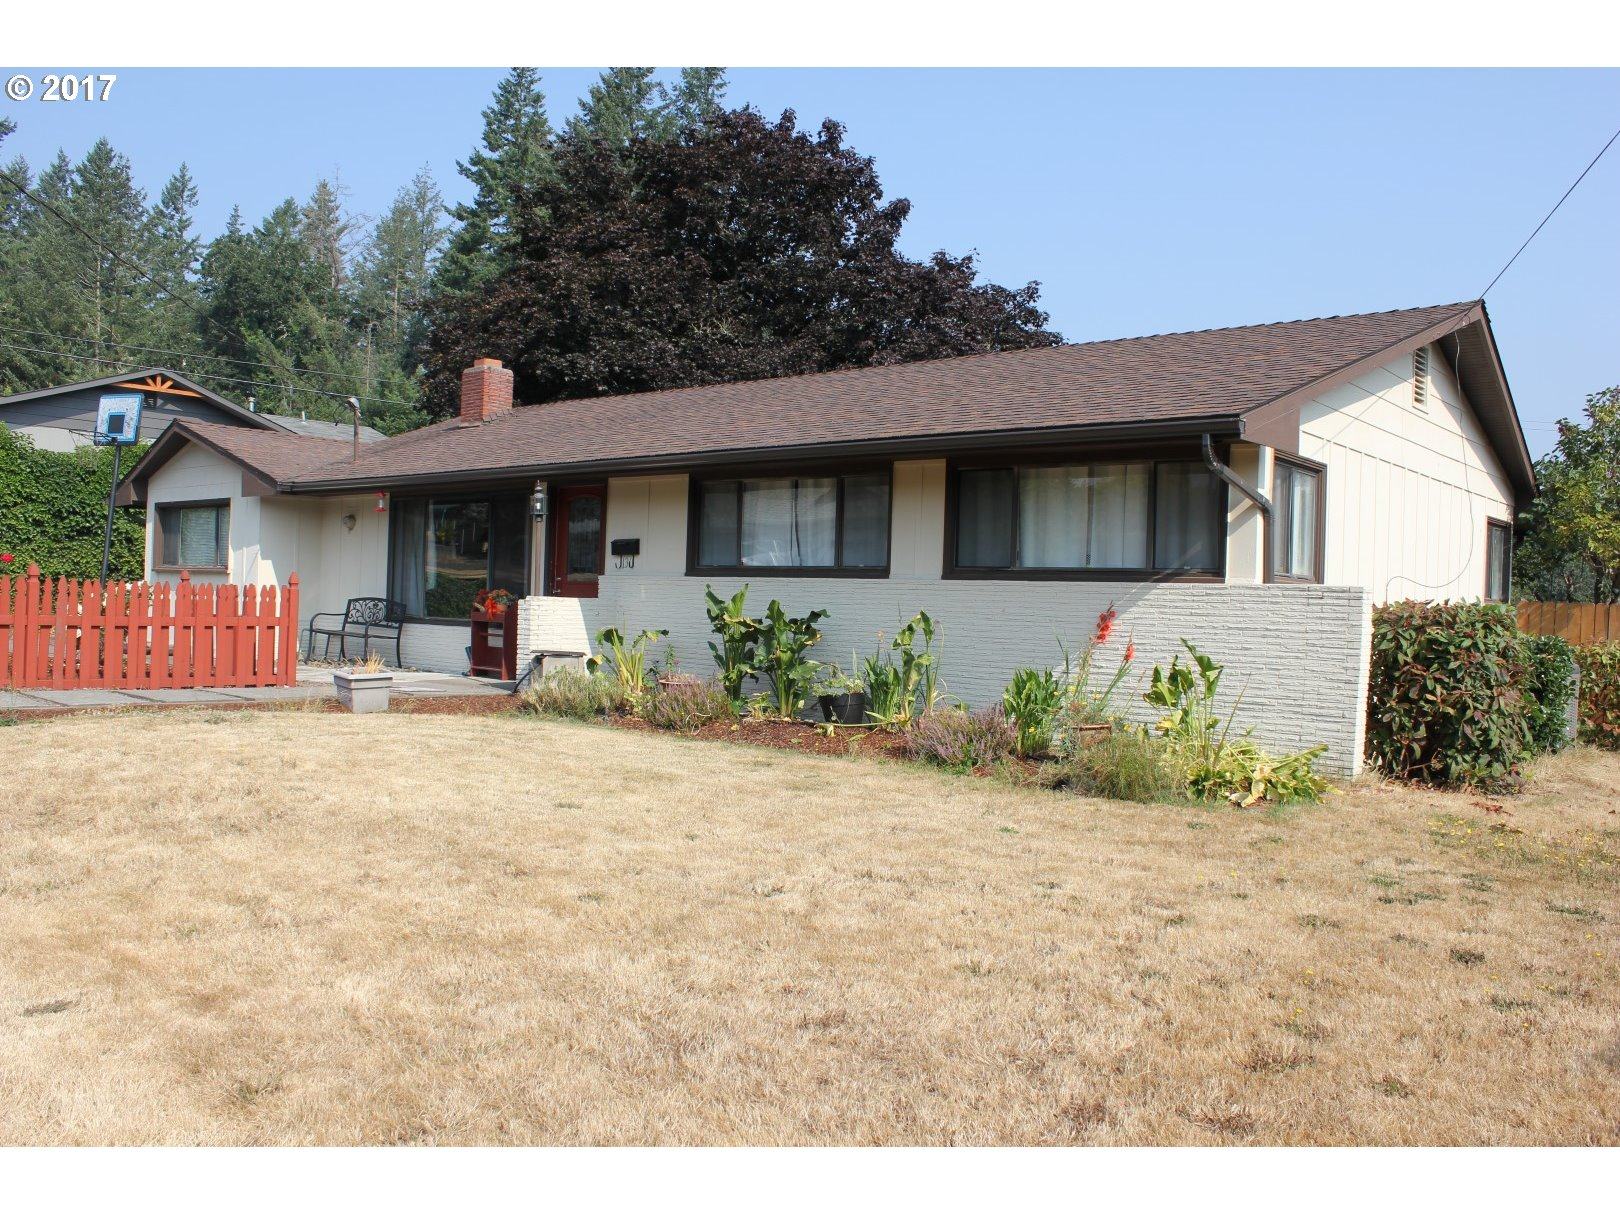 130 OSAGE ST, Sweet Home, OR 97386